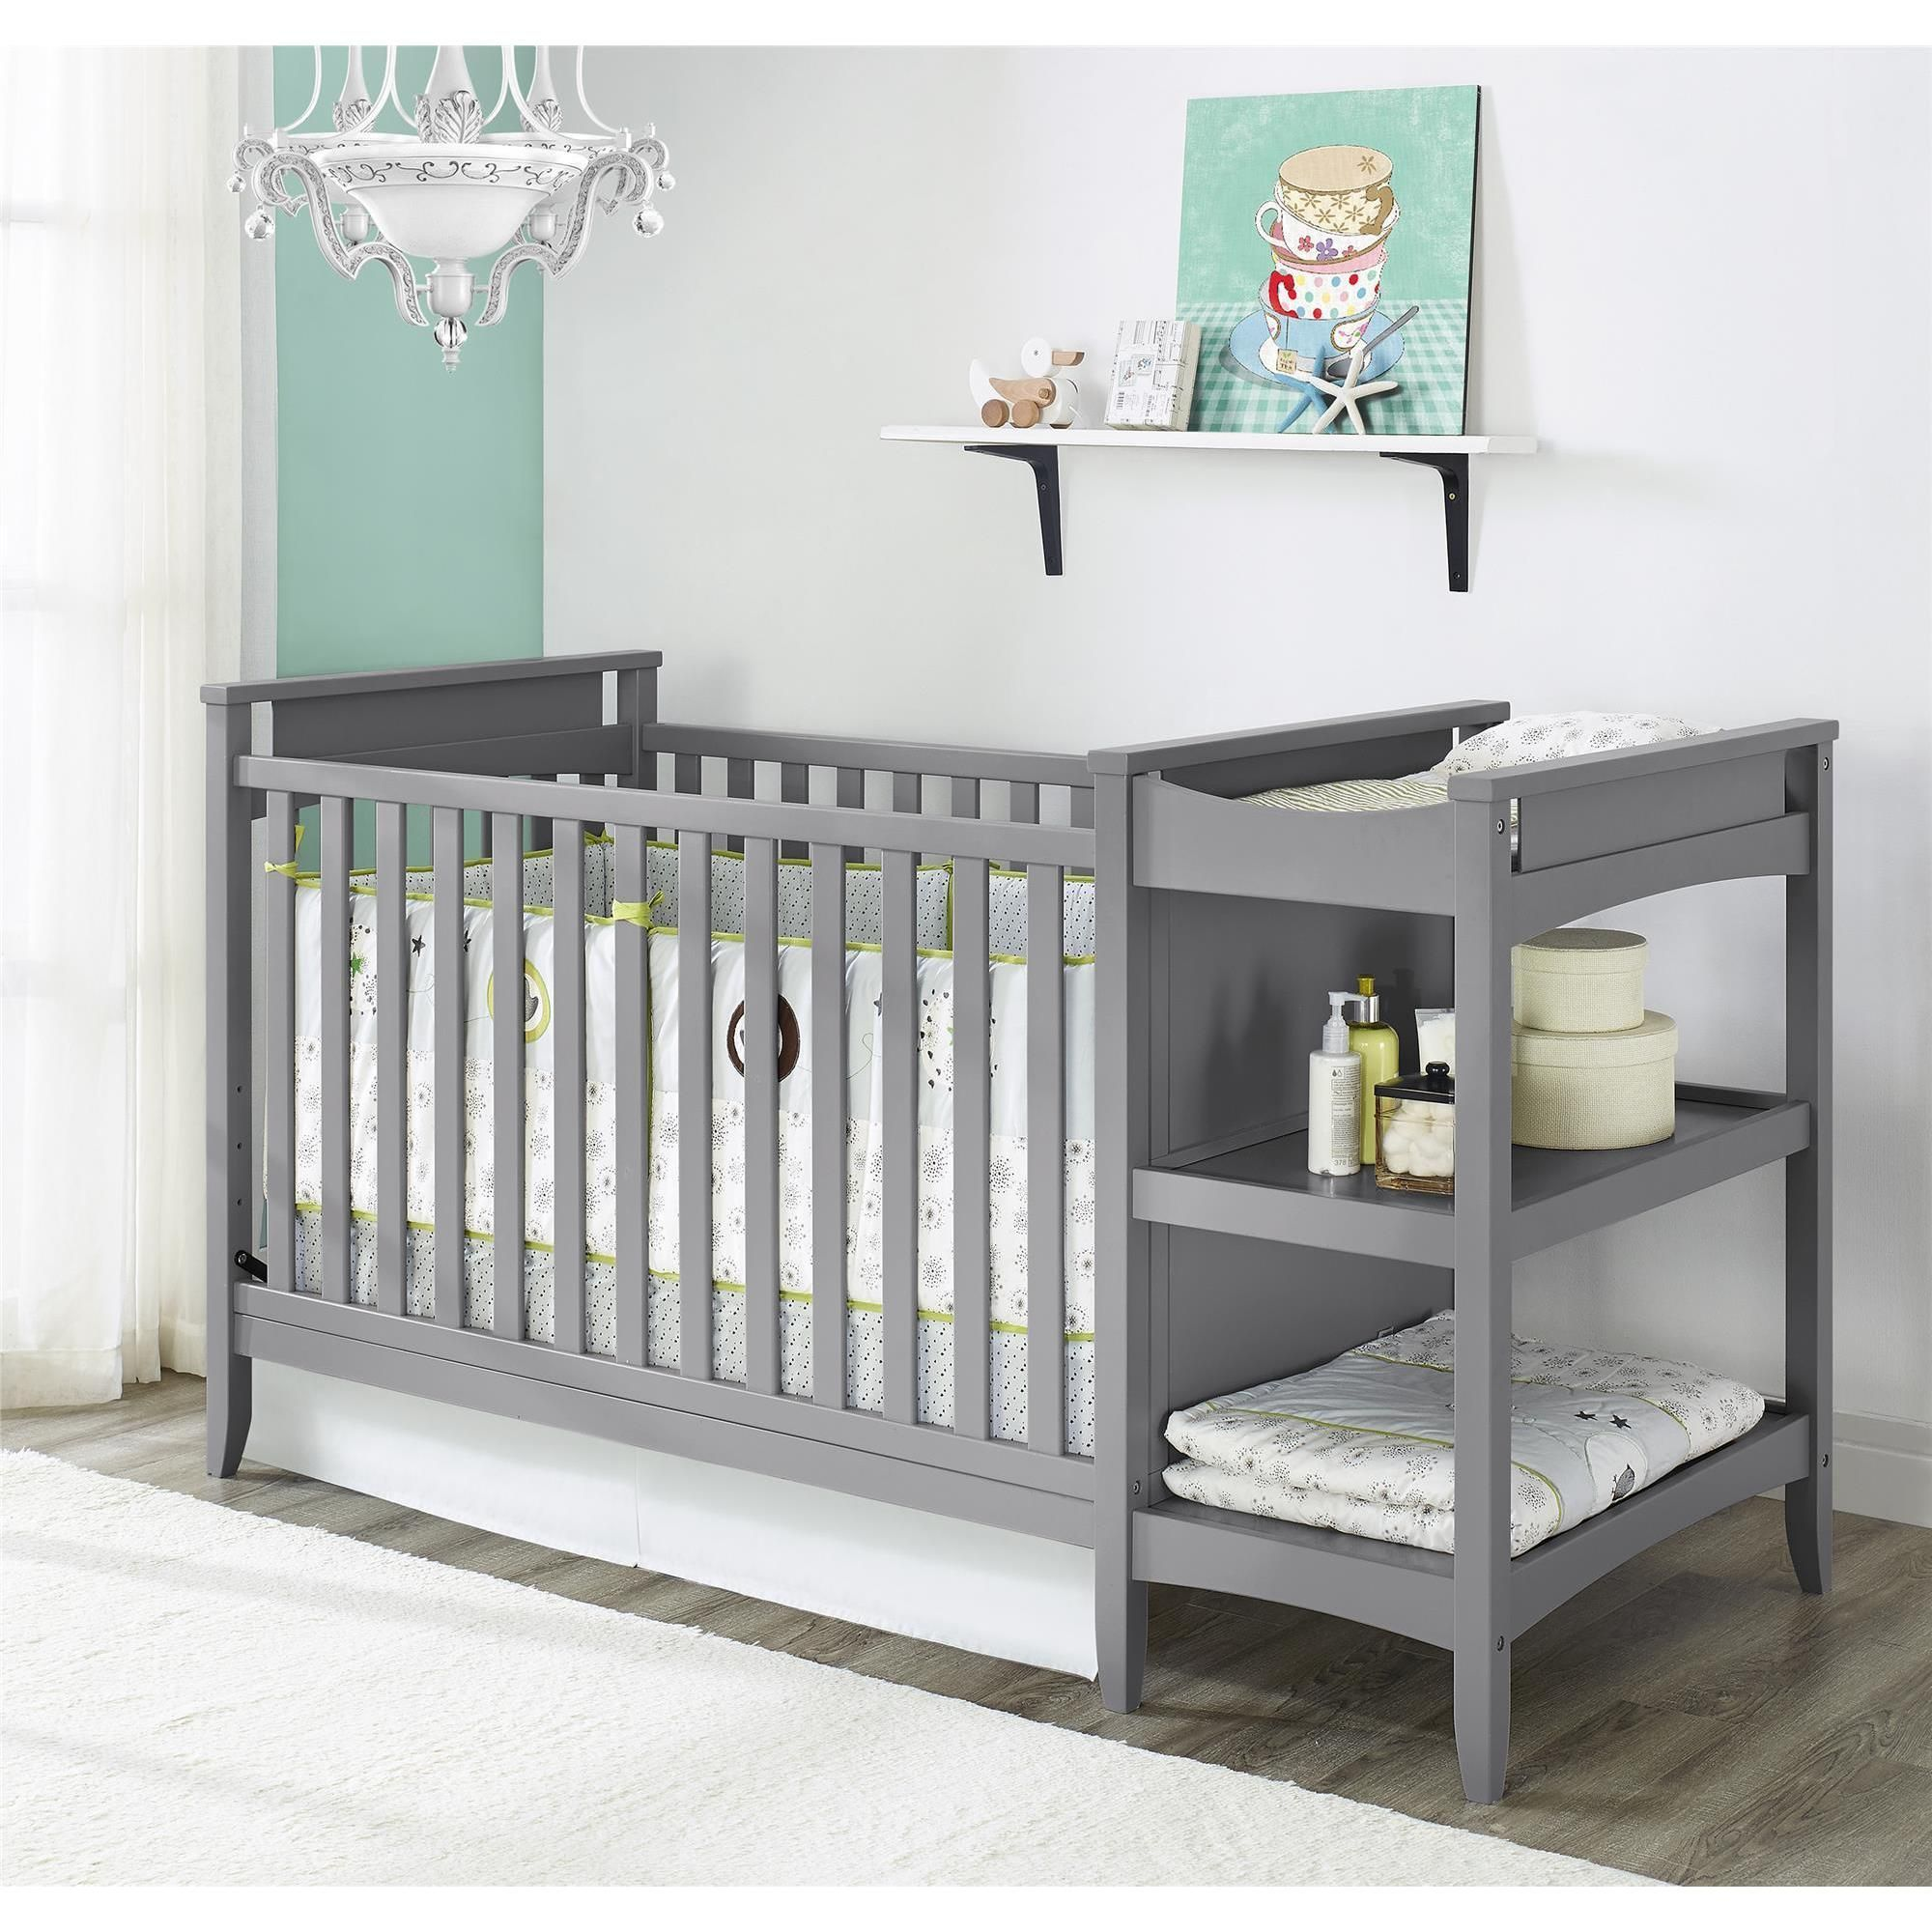 baby light dresser white in pin changing and nursery wall gender yellow mirror with matching stand crib this ideas wood for cribs natural neutral patterned table framed grey beneath